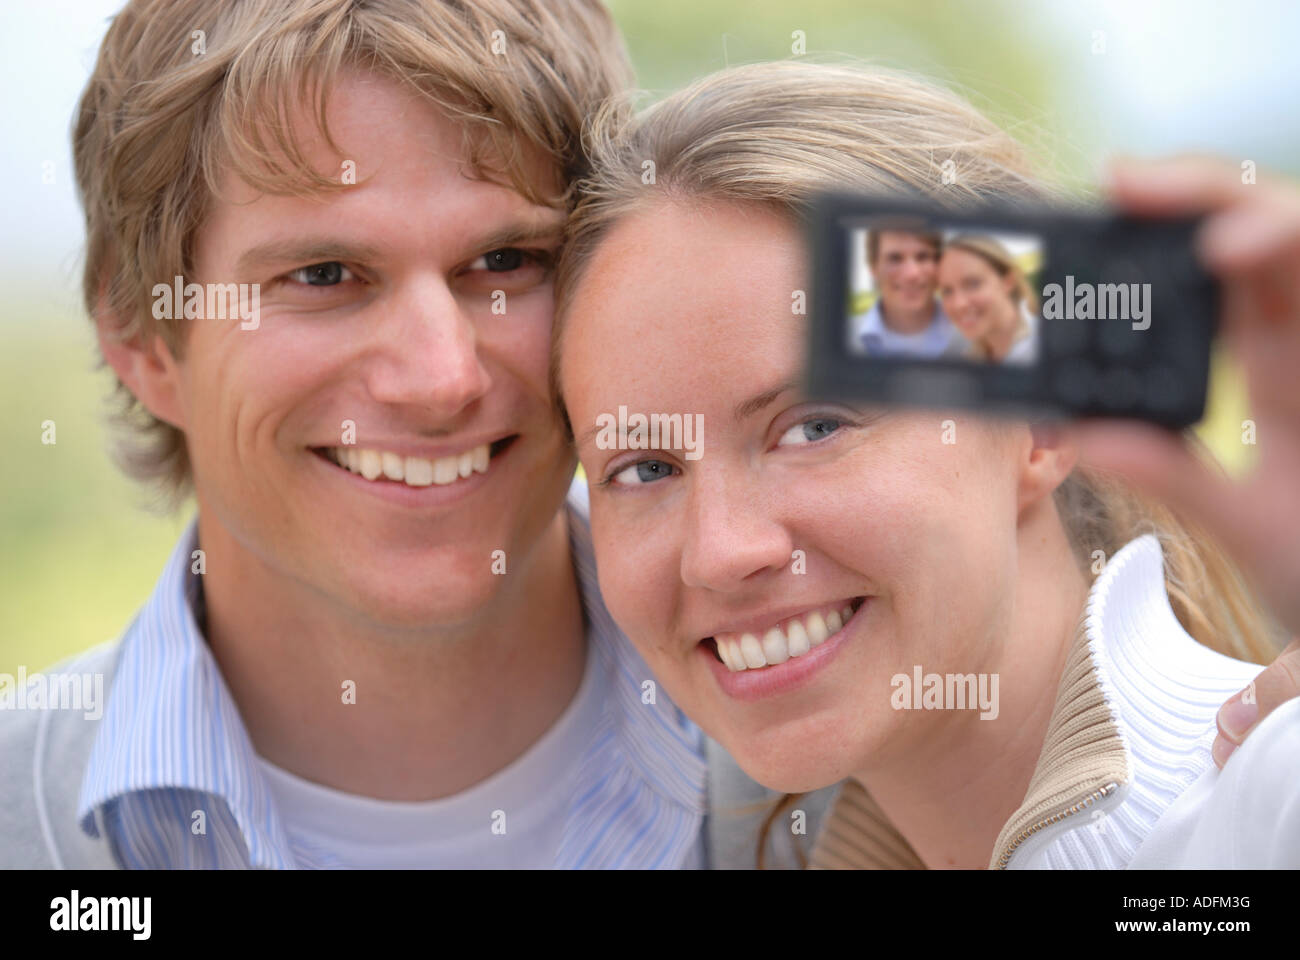 Young couple taking self portrait photograph Stock Photo